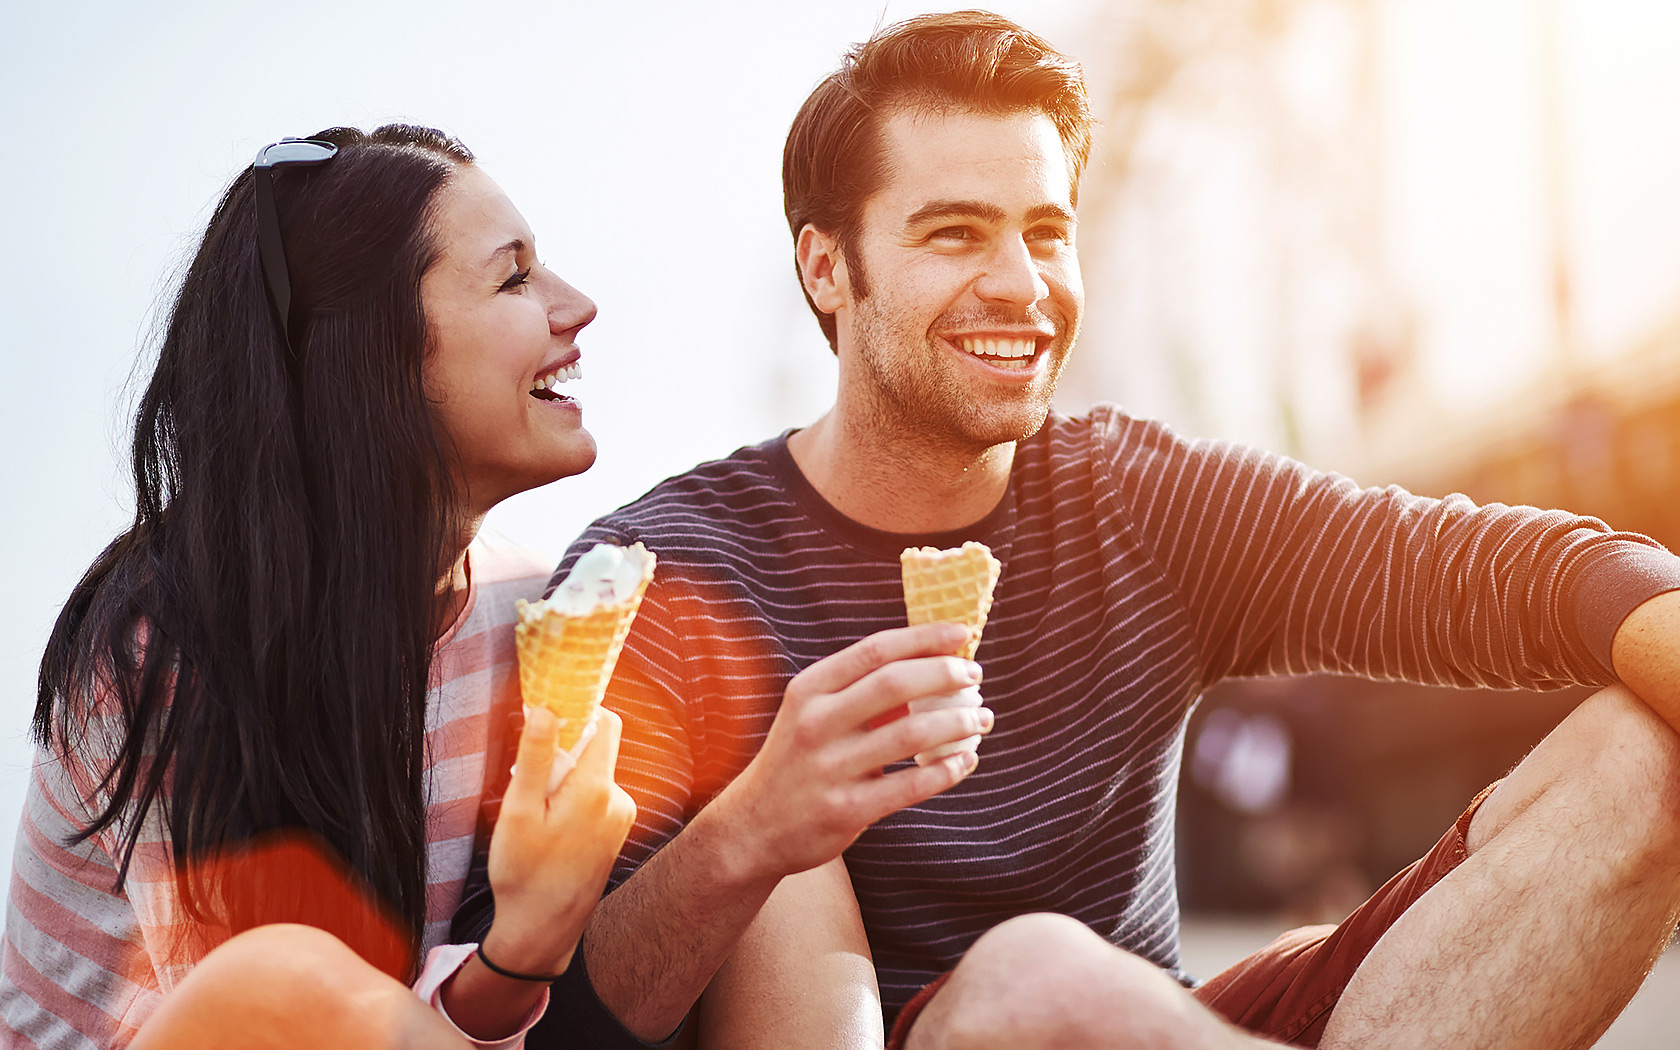 two people eating ice cream and laughing